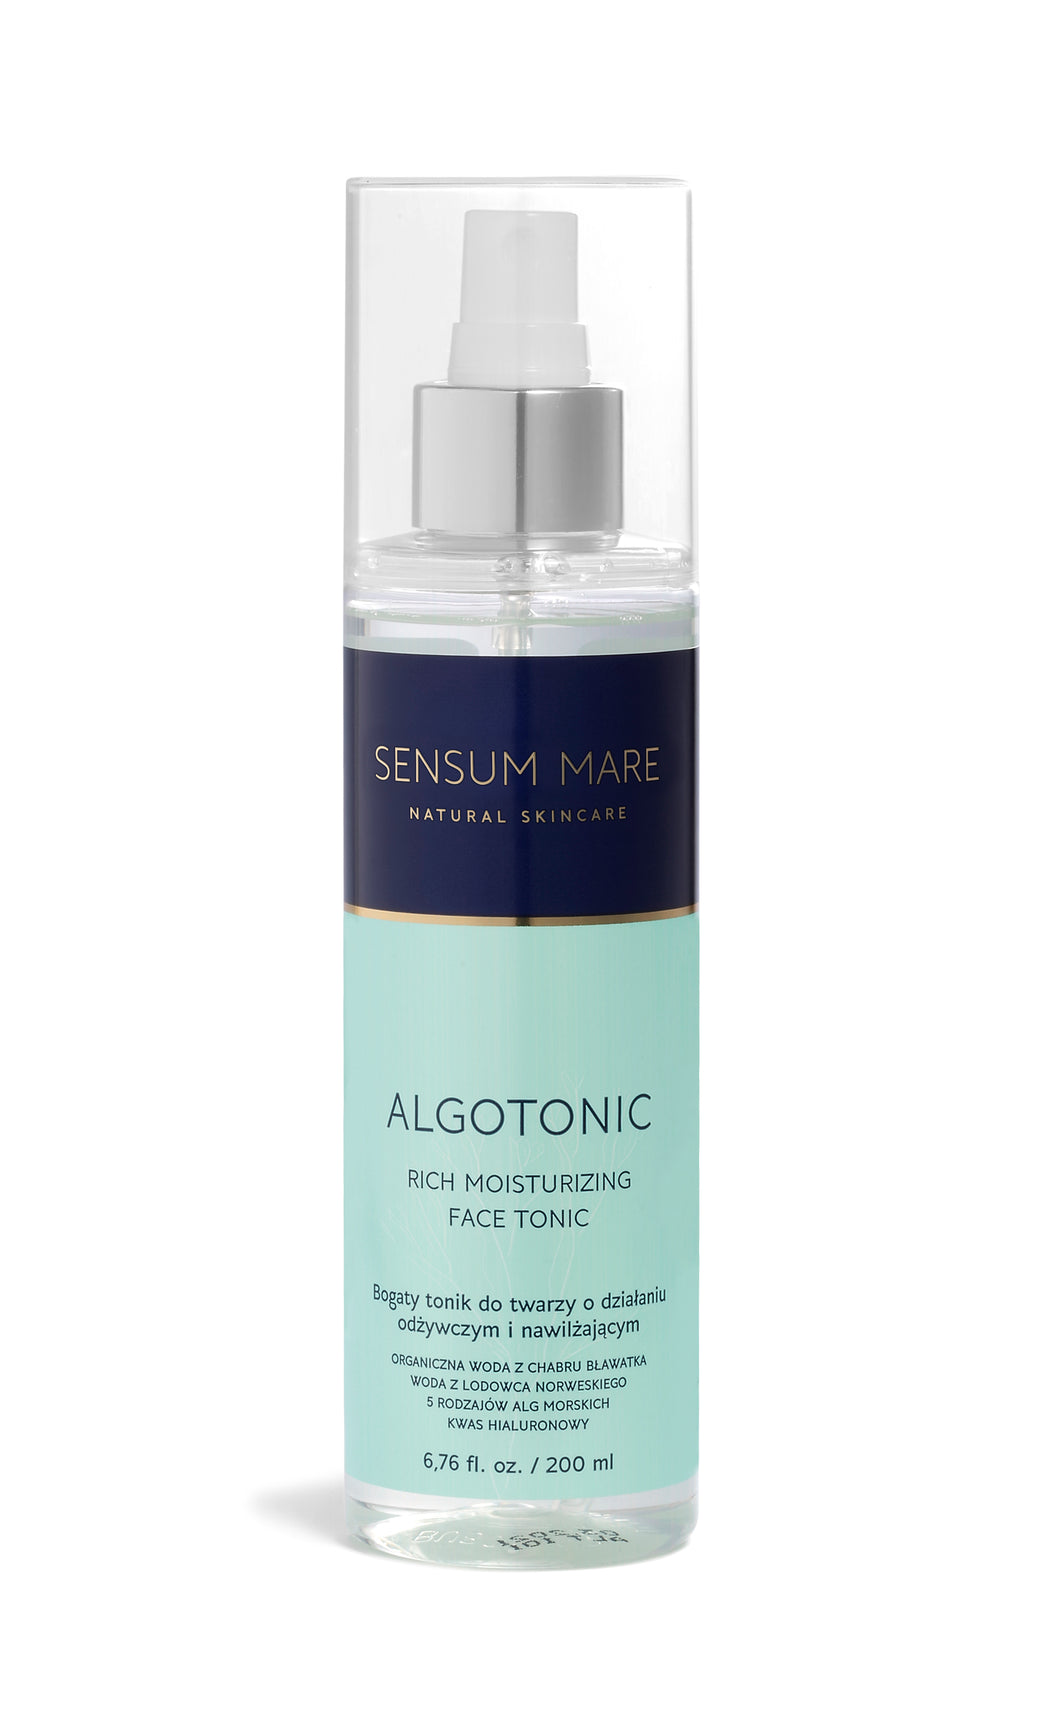 Sensum Mare ALGOTONIC  Rich Moisturizing Face Tonic 200ml